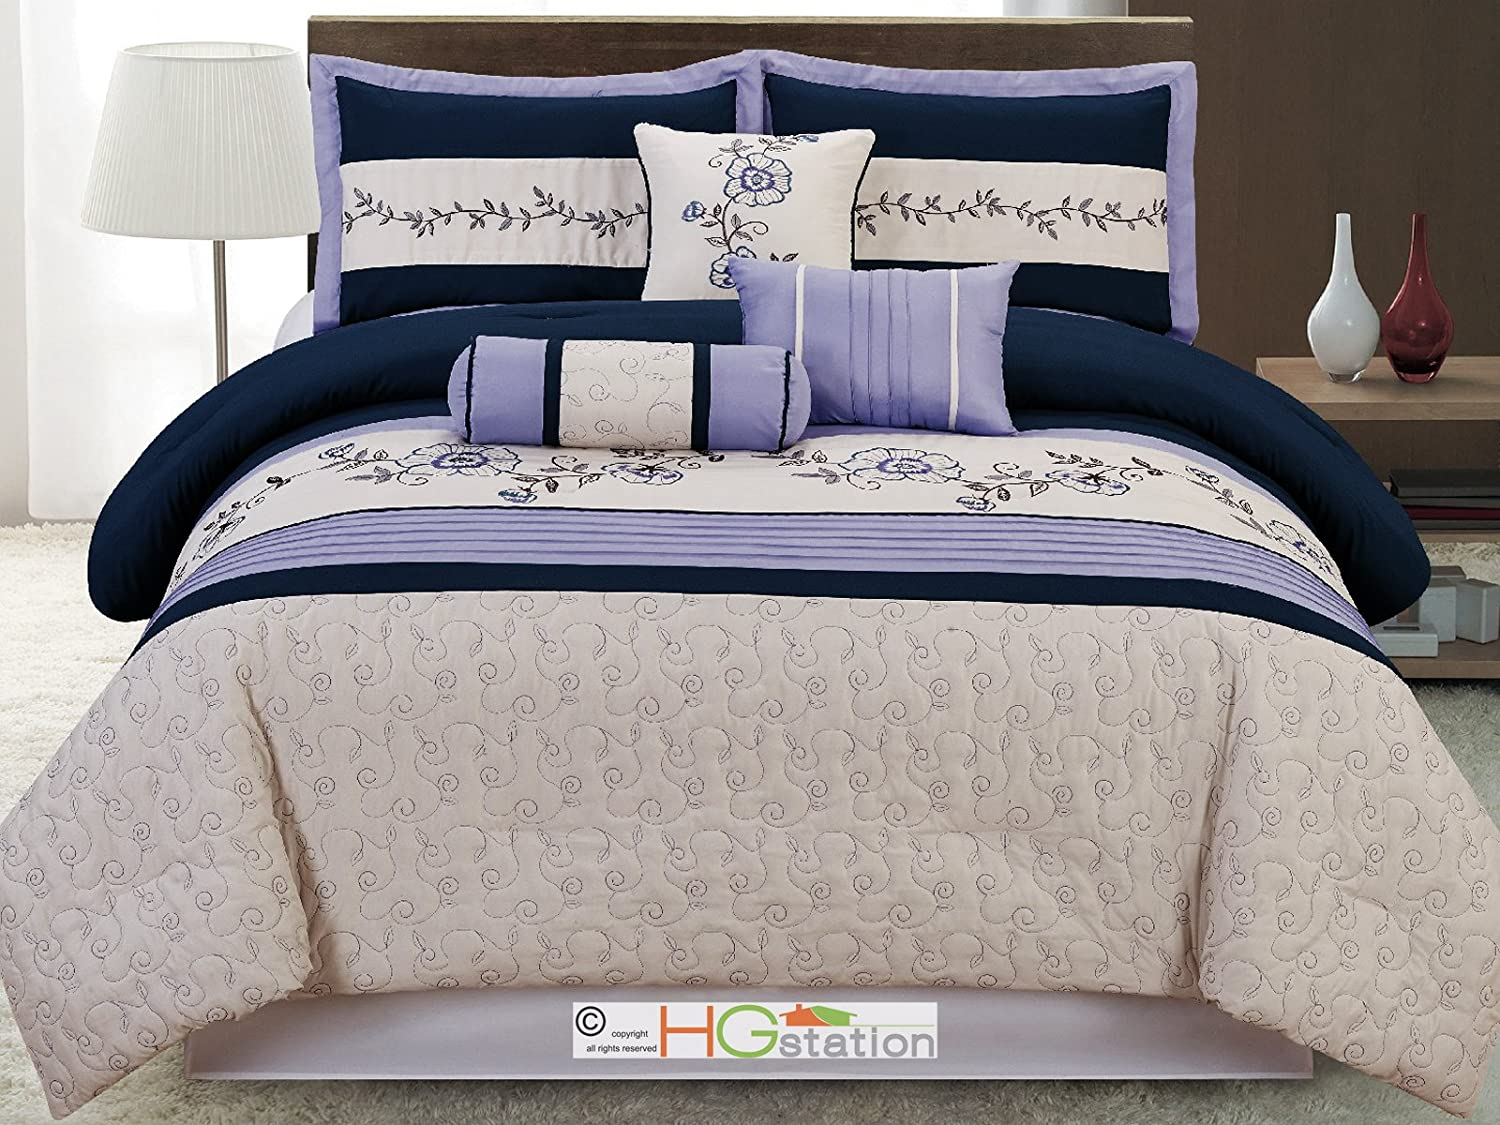 7-Pc Quilted Scroll Embroidery Floral Comforter Set Navy Light Blue Lavender Queen